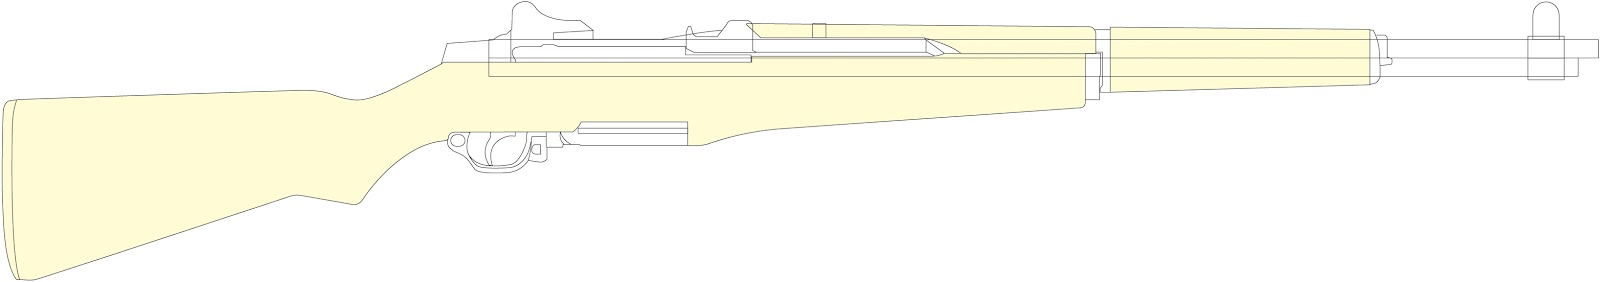 picture about Printable Gun Stock Templates named Timbos Creations: M1 Garand Marshmallow Shooter